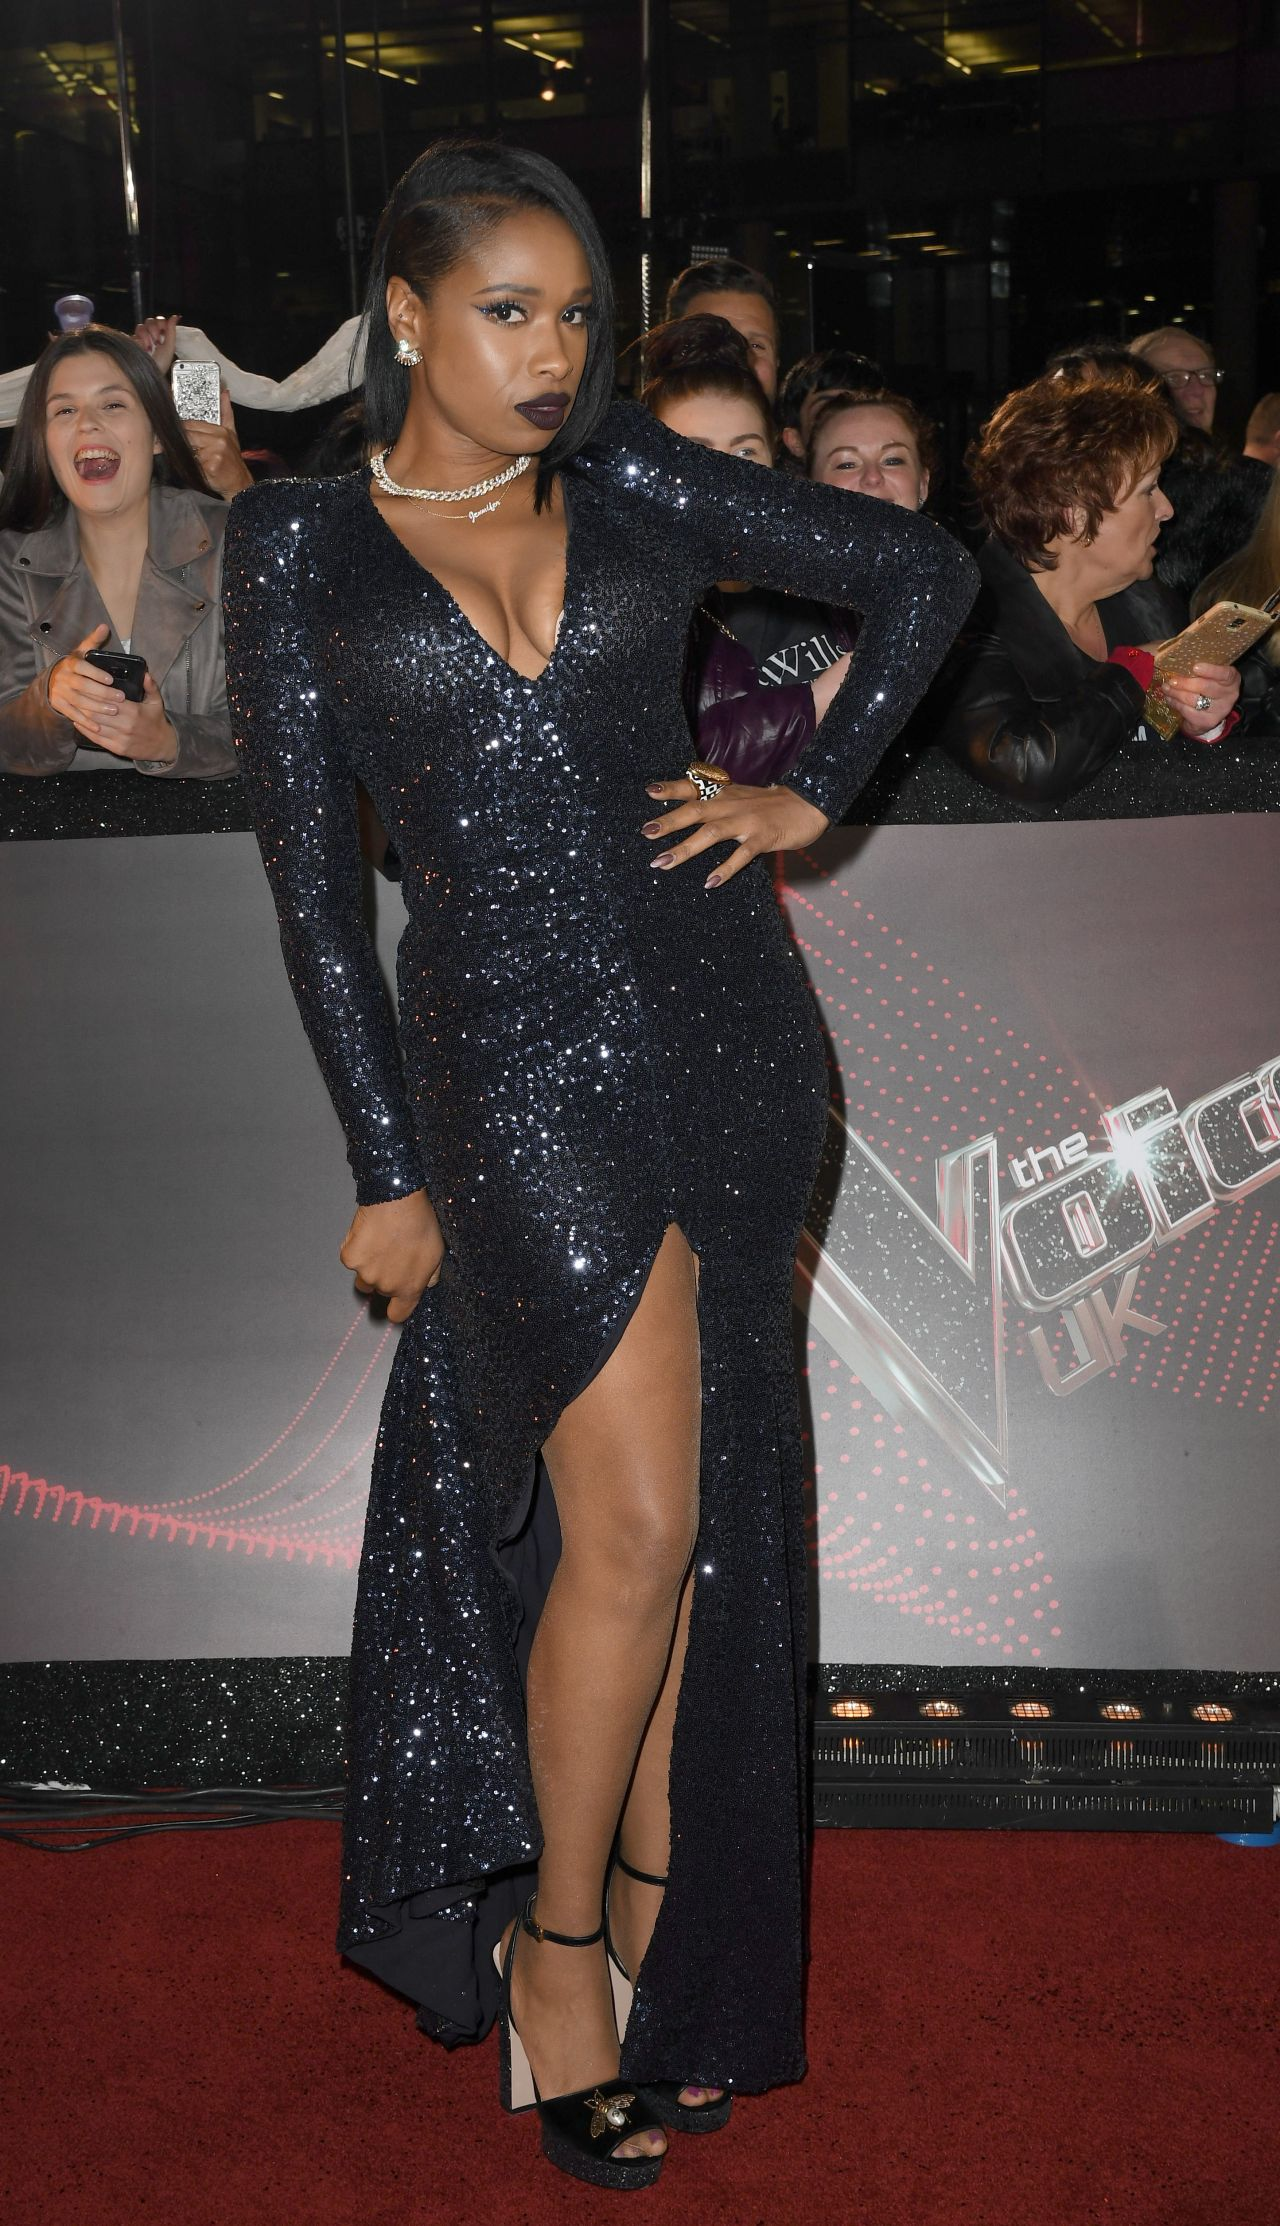 Jennifer Hudson Quot The Voice Quot Tv Show Photocall In